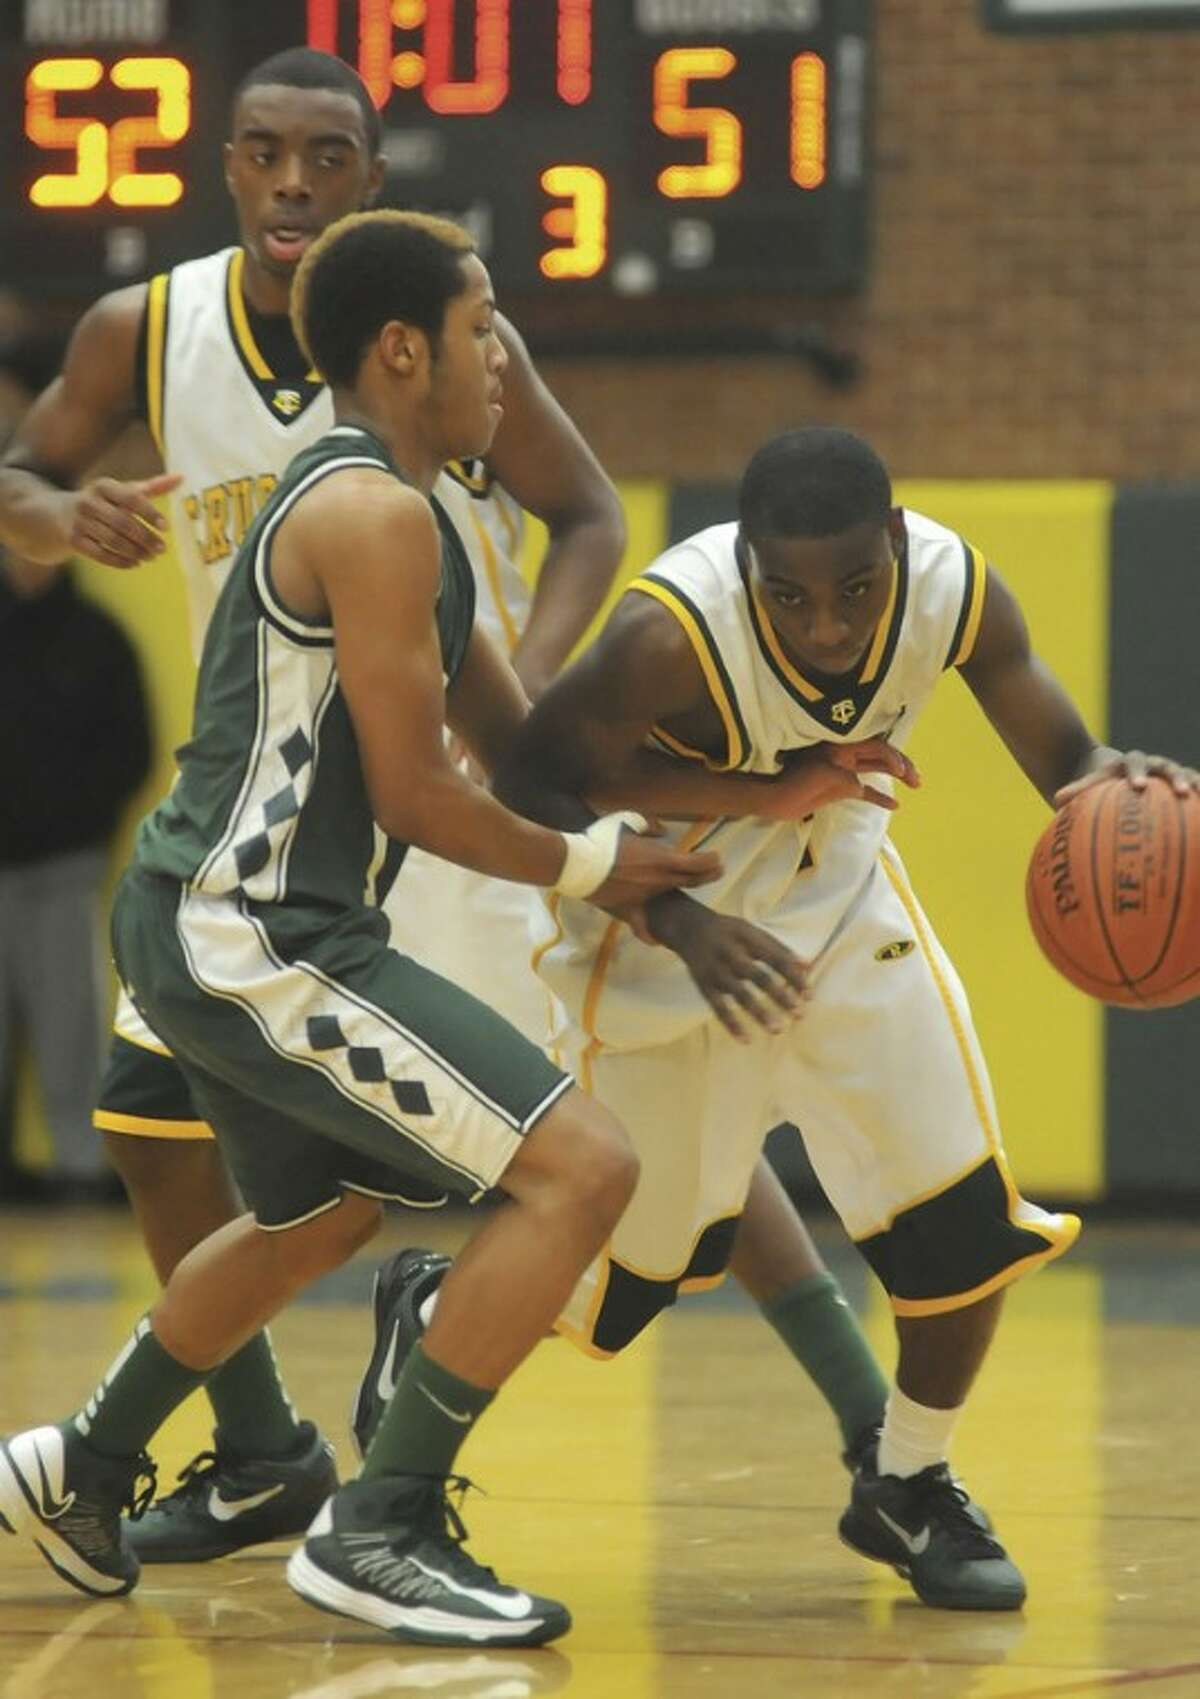 Hour photo/John Nash Schadrac Casimir of Trinity Catholic, right, protects the ball as he dribbles past Norwalk's Jeremy Linton while Brandon Wheeler looks on. Trinity turned back visiting Norwalk, 77-67, in Friday night's clash of early-season unbeatens at Walsh Gymnasium in Stamford.